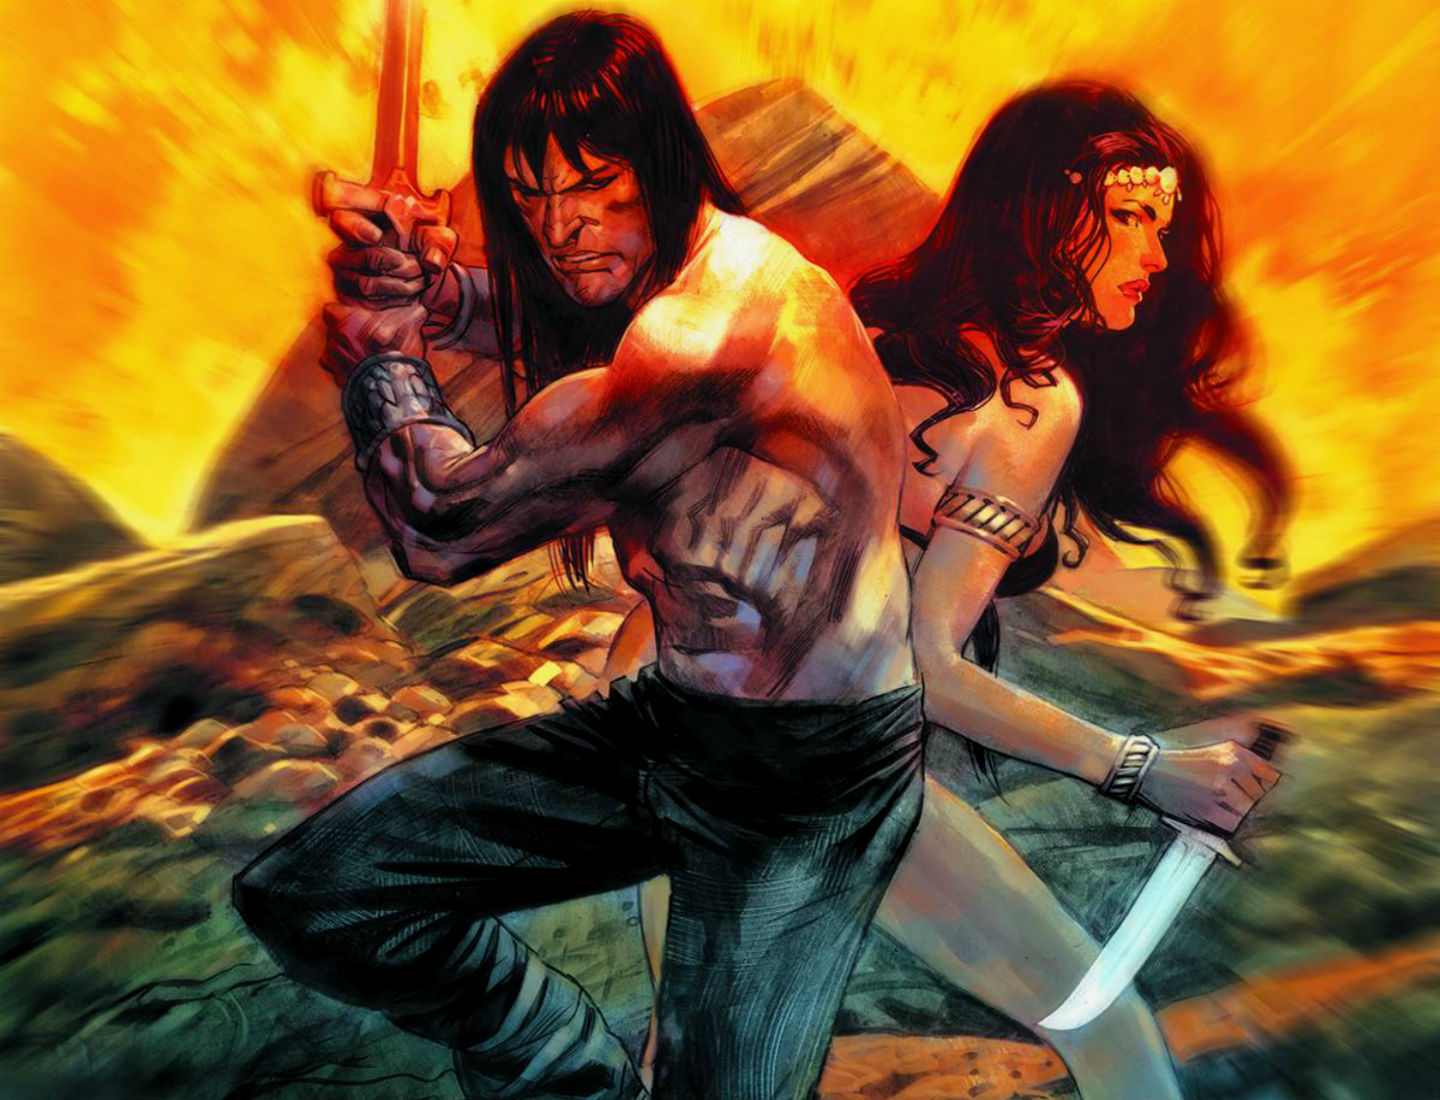 CONAN THE BARBARIAN gv wallpaper | 1440x1100 | 140189 ...